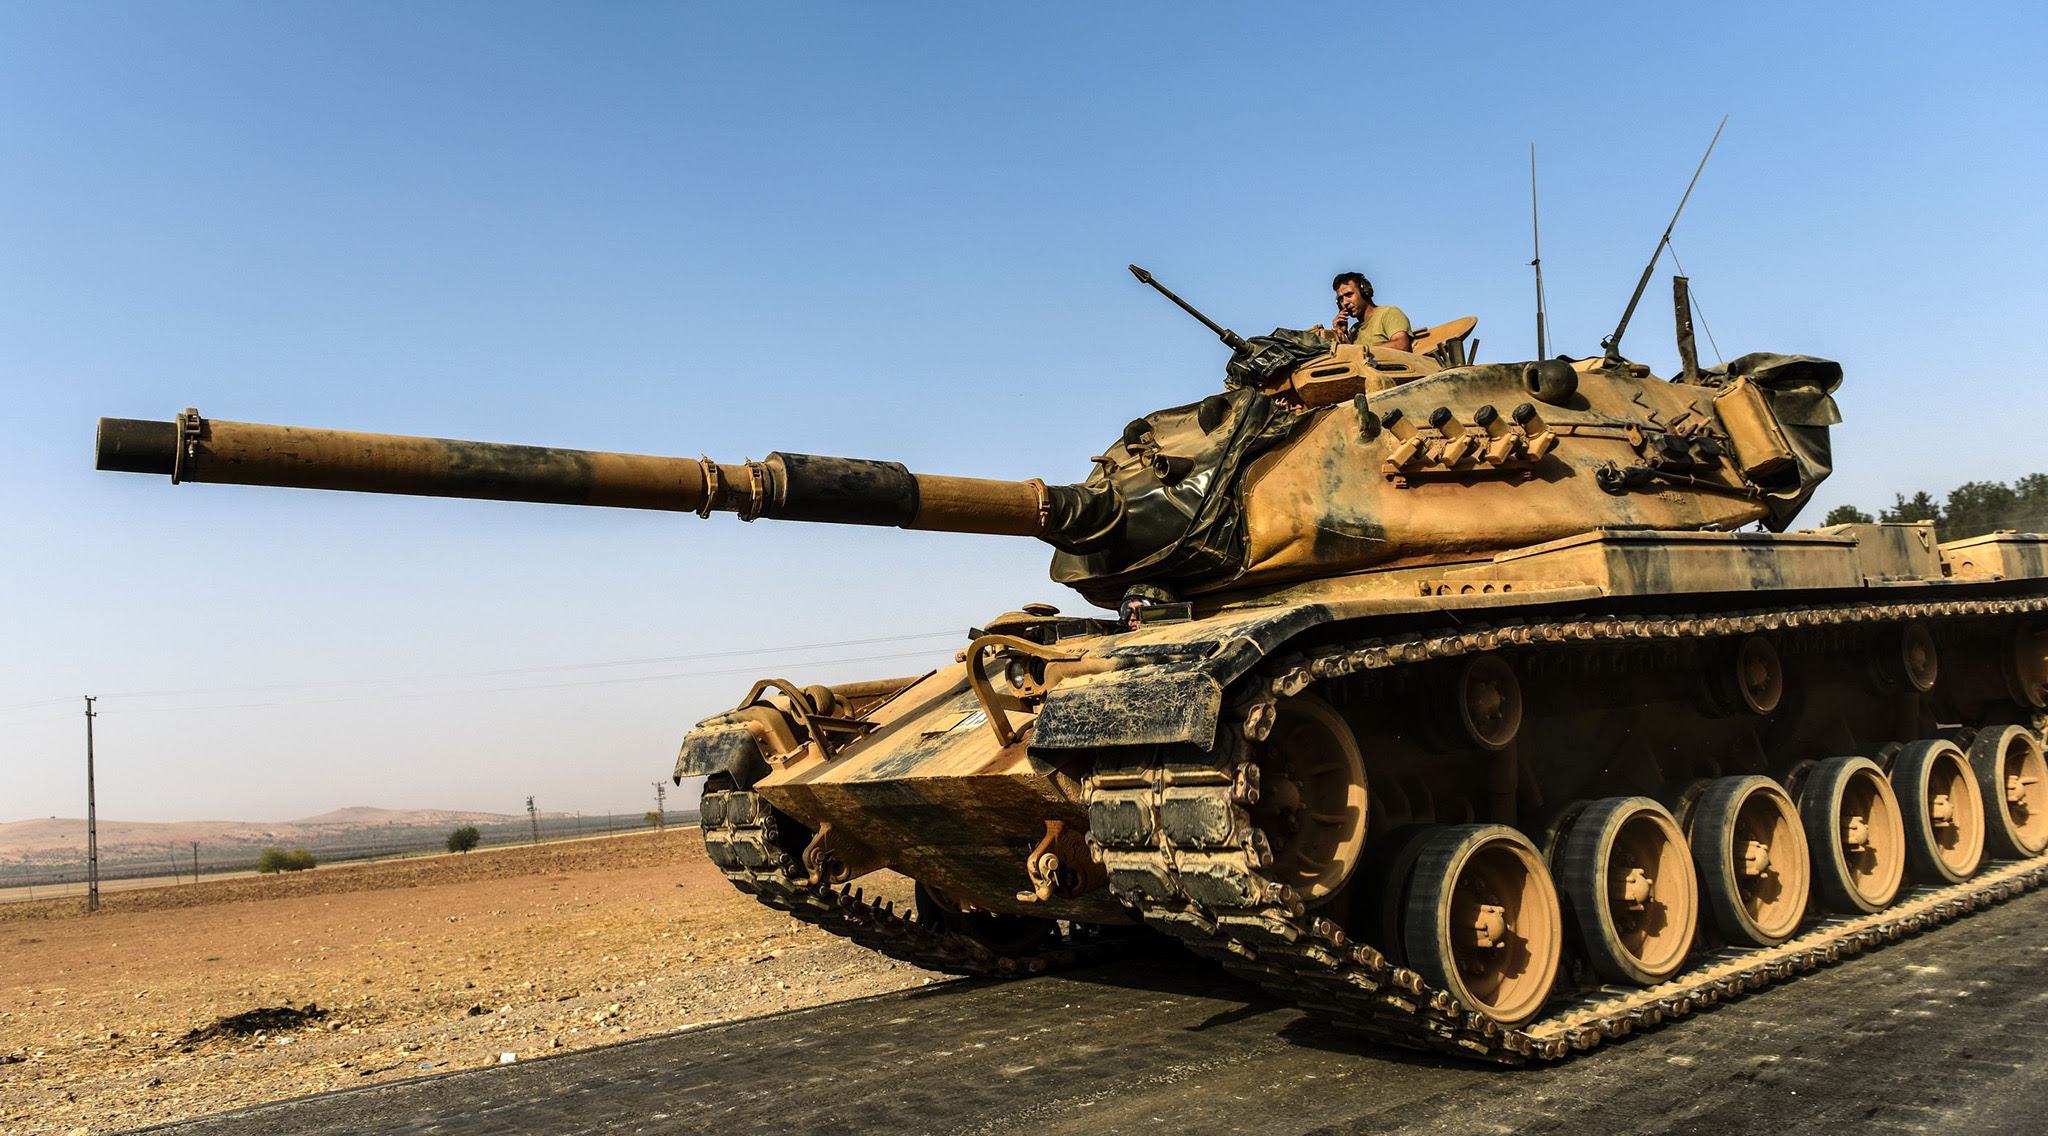 A Turkish army tank drives towards Syria in the Turkish border city of Karkamis, in the southern region of Gaziantep on August 24, 2016. Turkey's army backed by international coalition air strikes launched an operation involving fighter jets and elite ground troops to drive Islamic State jihadists out of a key Syrian border town. / AFP PHOTO / BULENT KILICBULENT KILIC/AFP/Getty Images